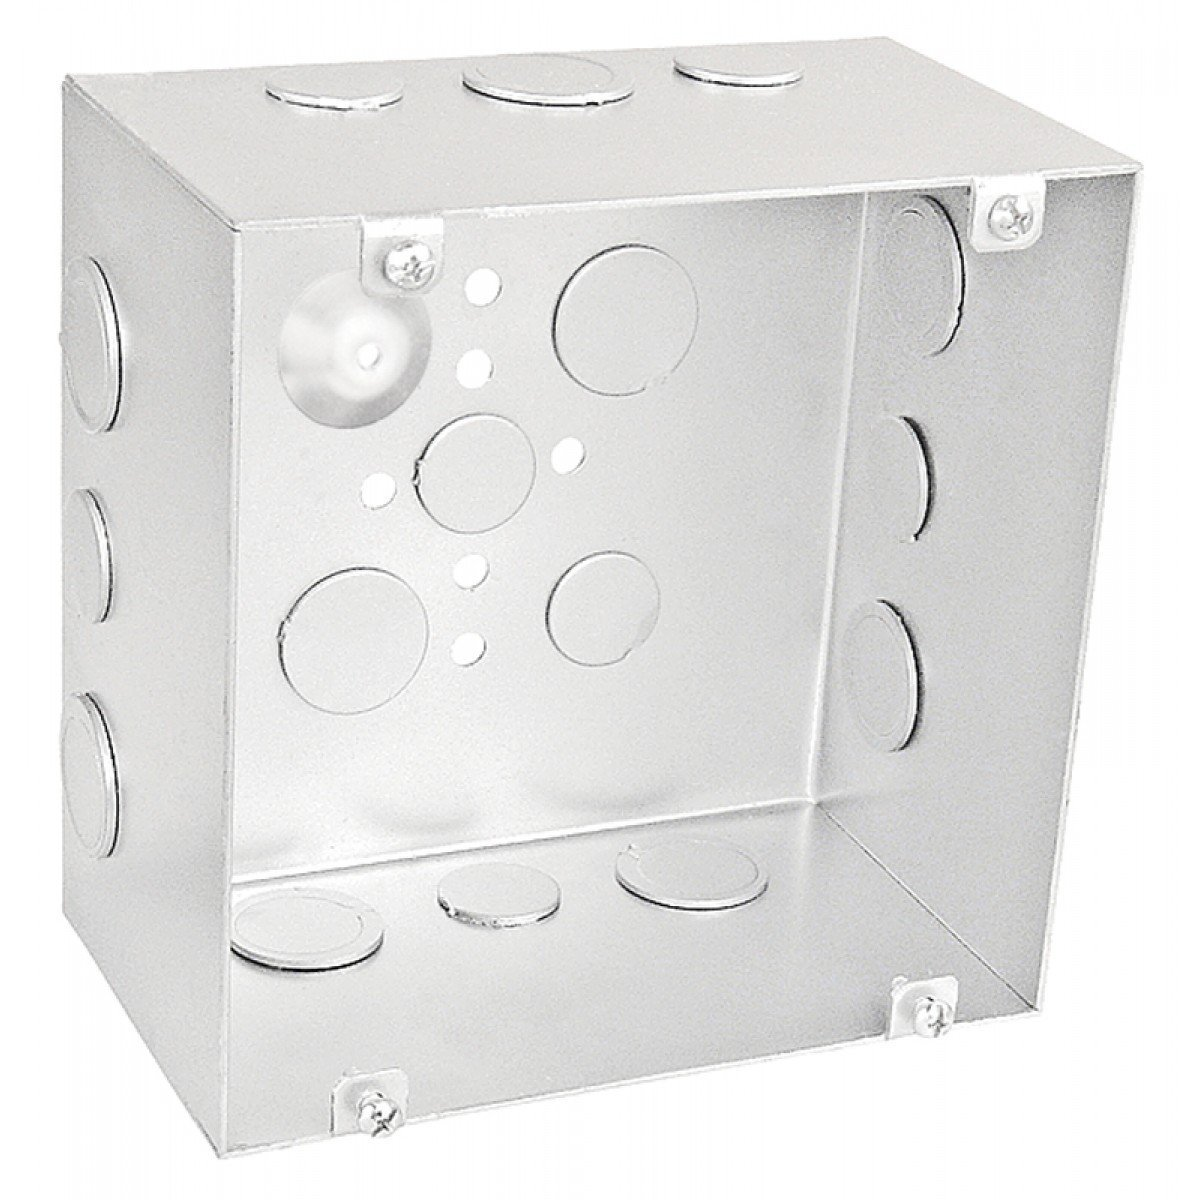 1 Pc, 6 Square Junction Box, 3-1/2 In.Deep, (6) 1/2 In. & (6) 1/2-3/4 In. Side Knockouts; (2) 1/2 In. & (2) 3/4 In. Bottom Knockouts w/Ground Hump, Zinc Plated Steel